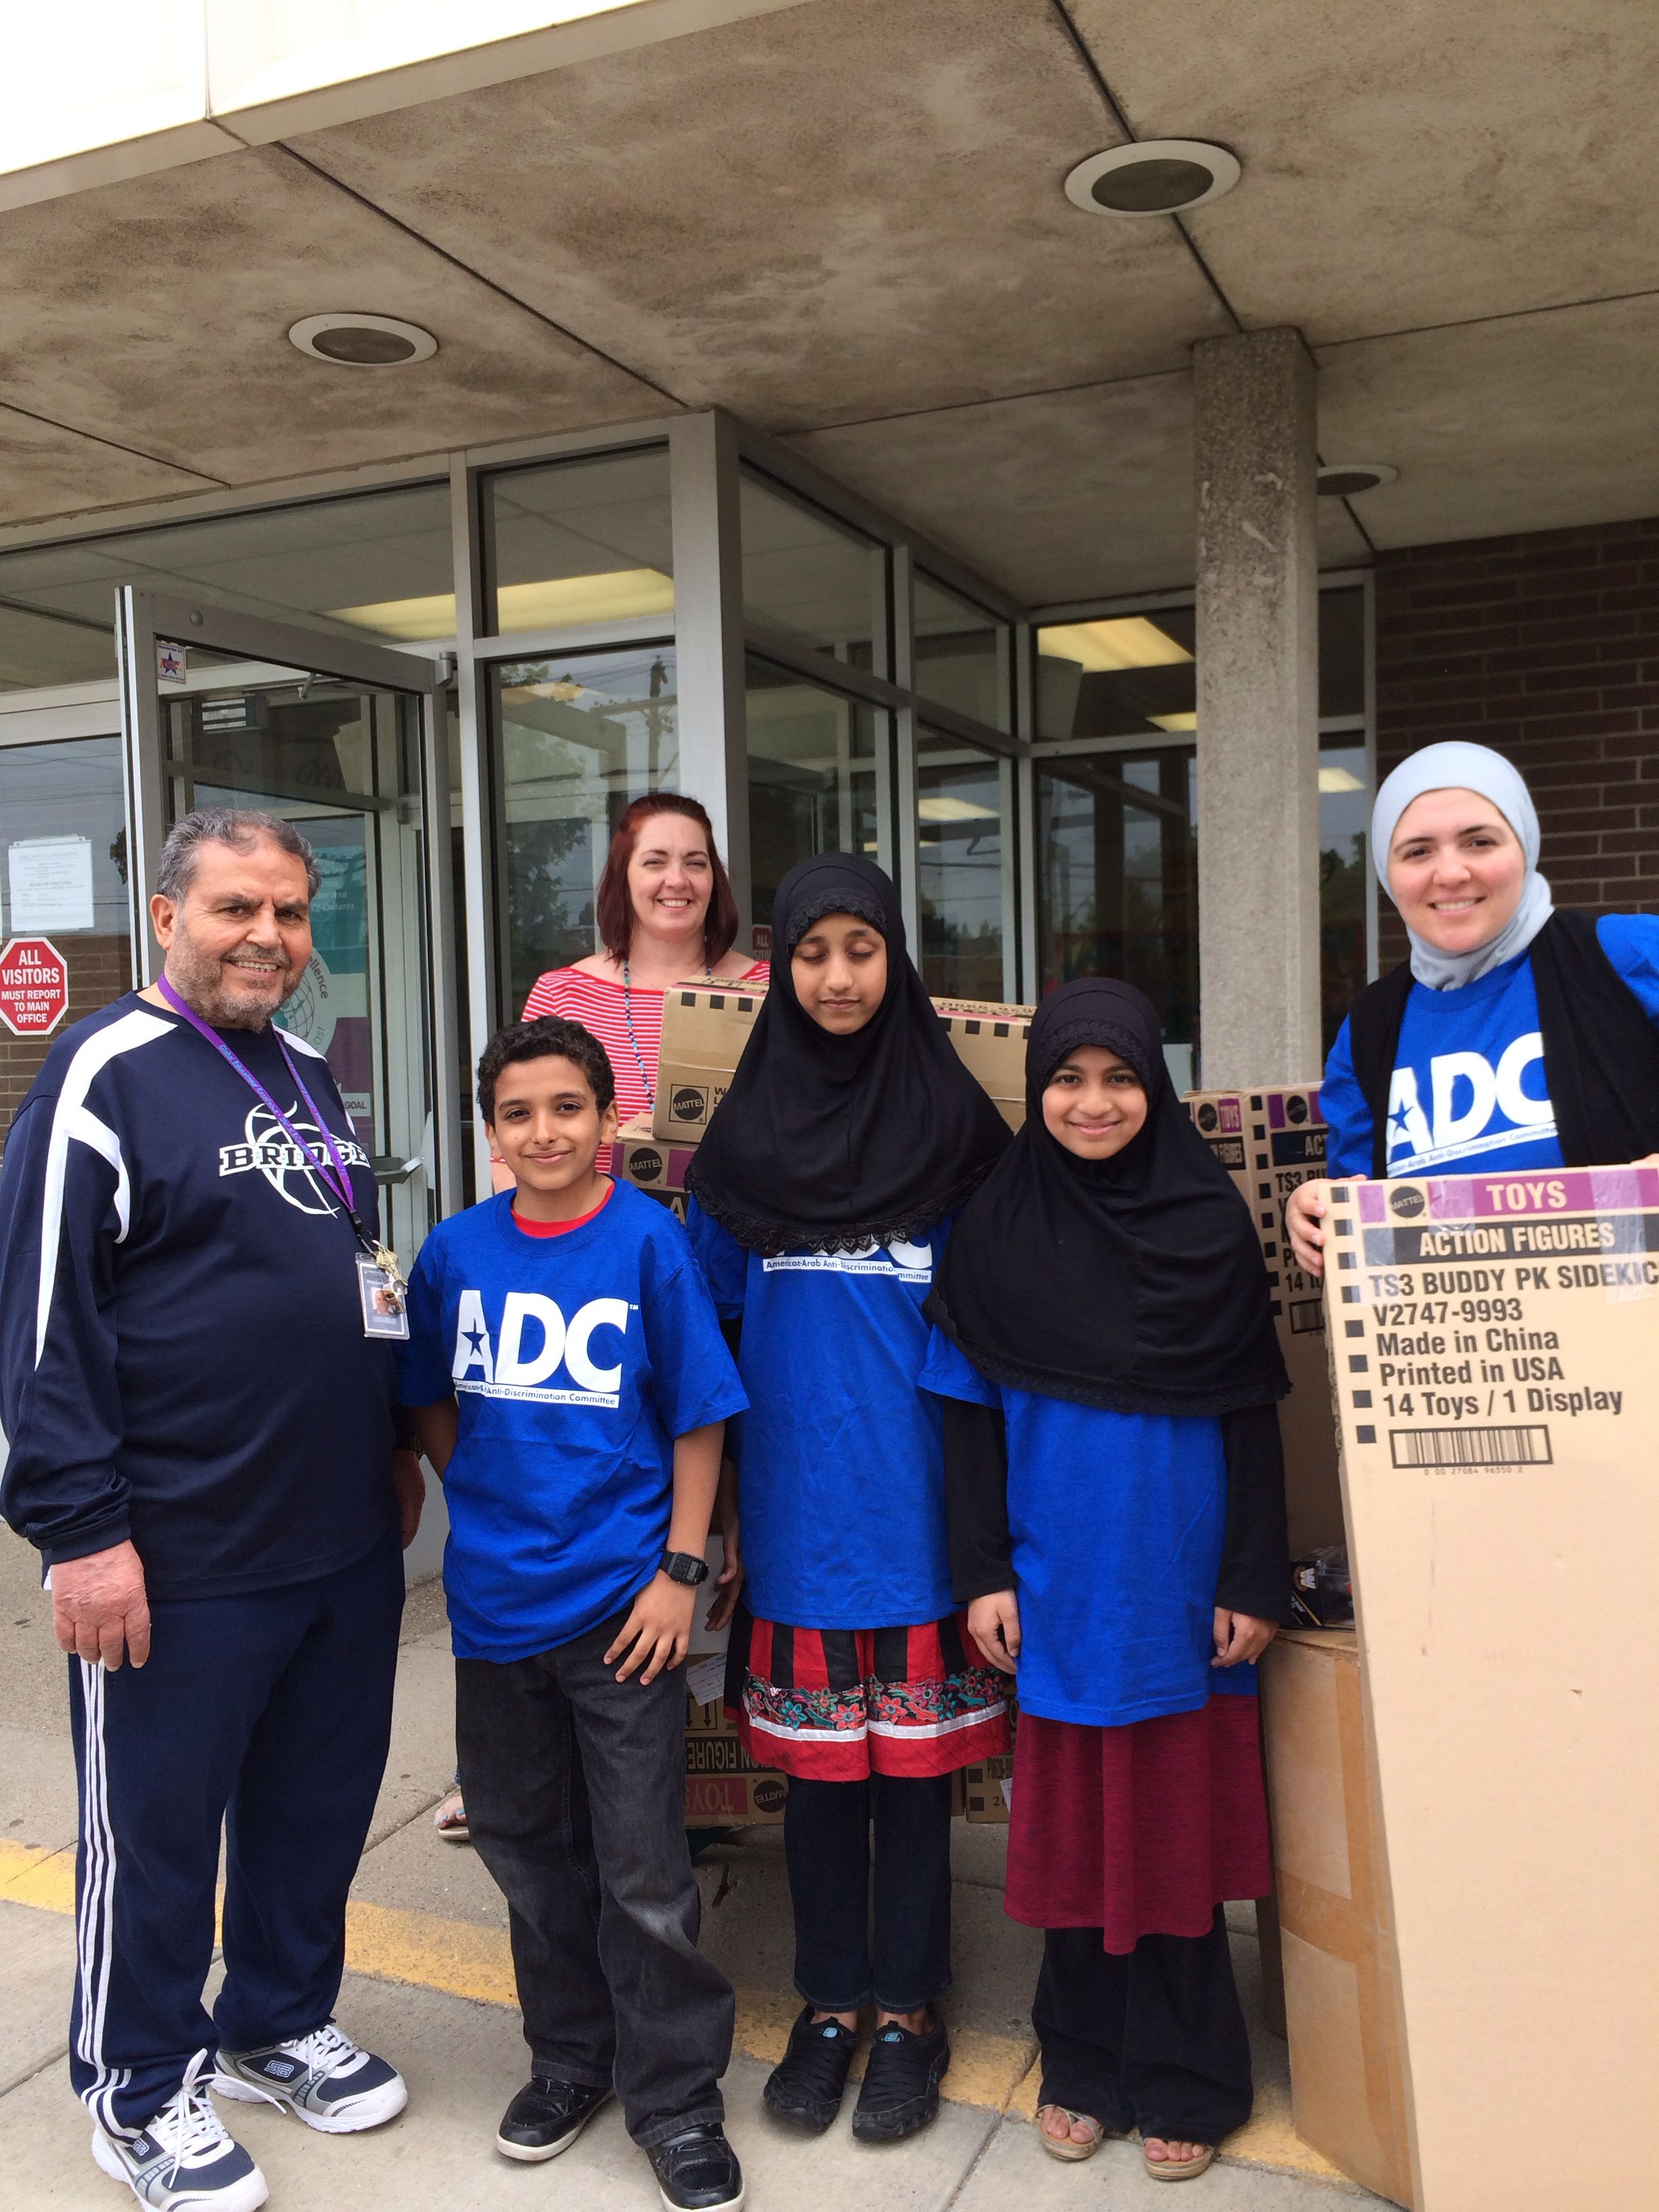 ADC-Michigan Director delivering donated toys to Hamtramck elementary school #arabamerican #publicservice #civilrights